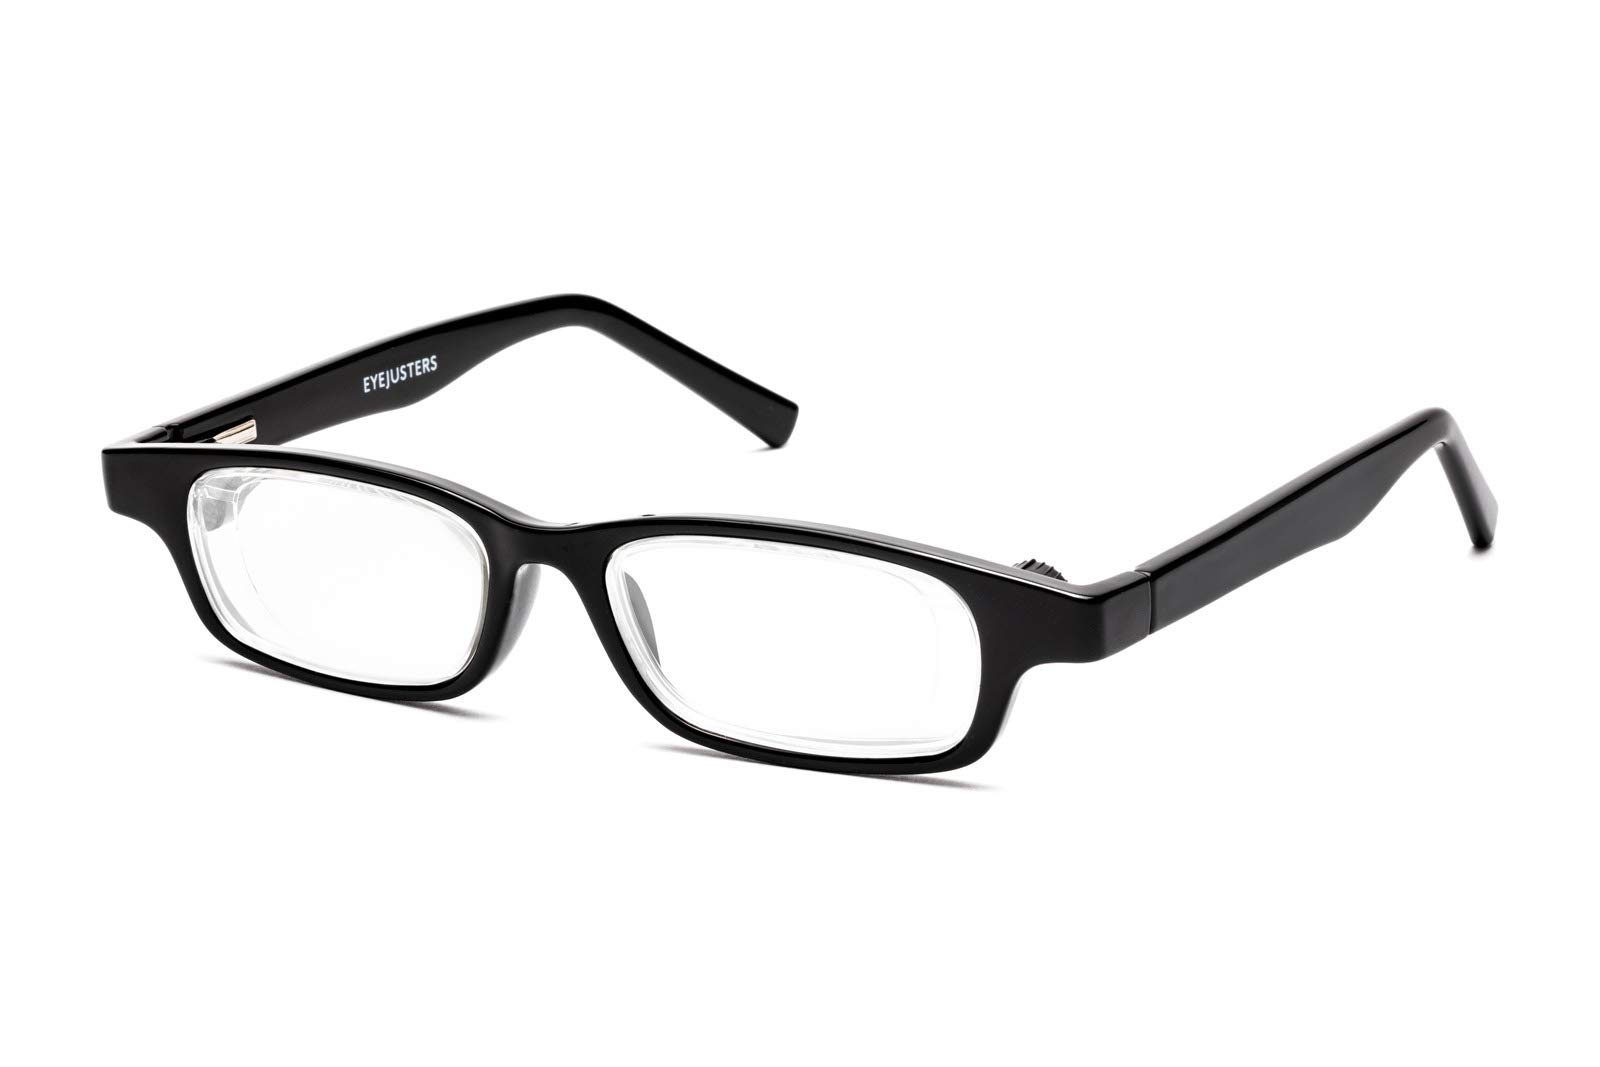 Eyejusters Self-Adjustable Glasses, Oxford Edition, Black by EYEJUSTERS